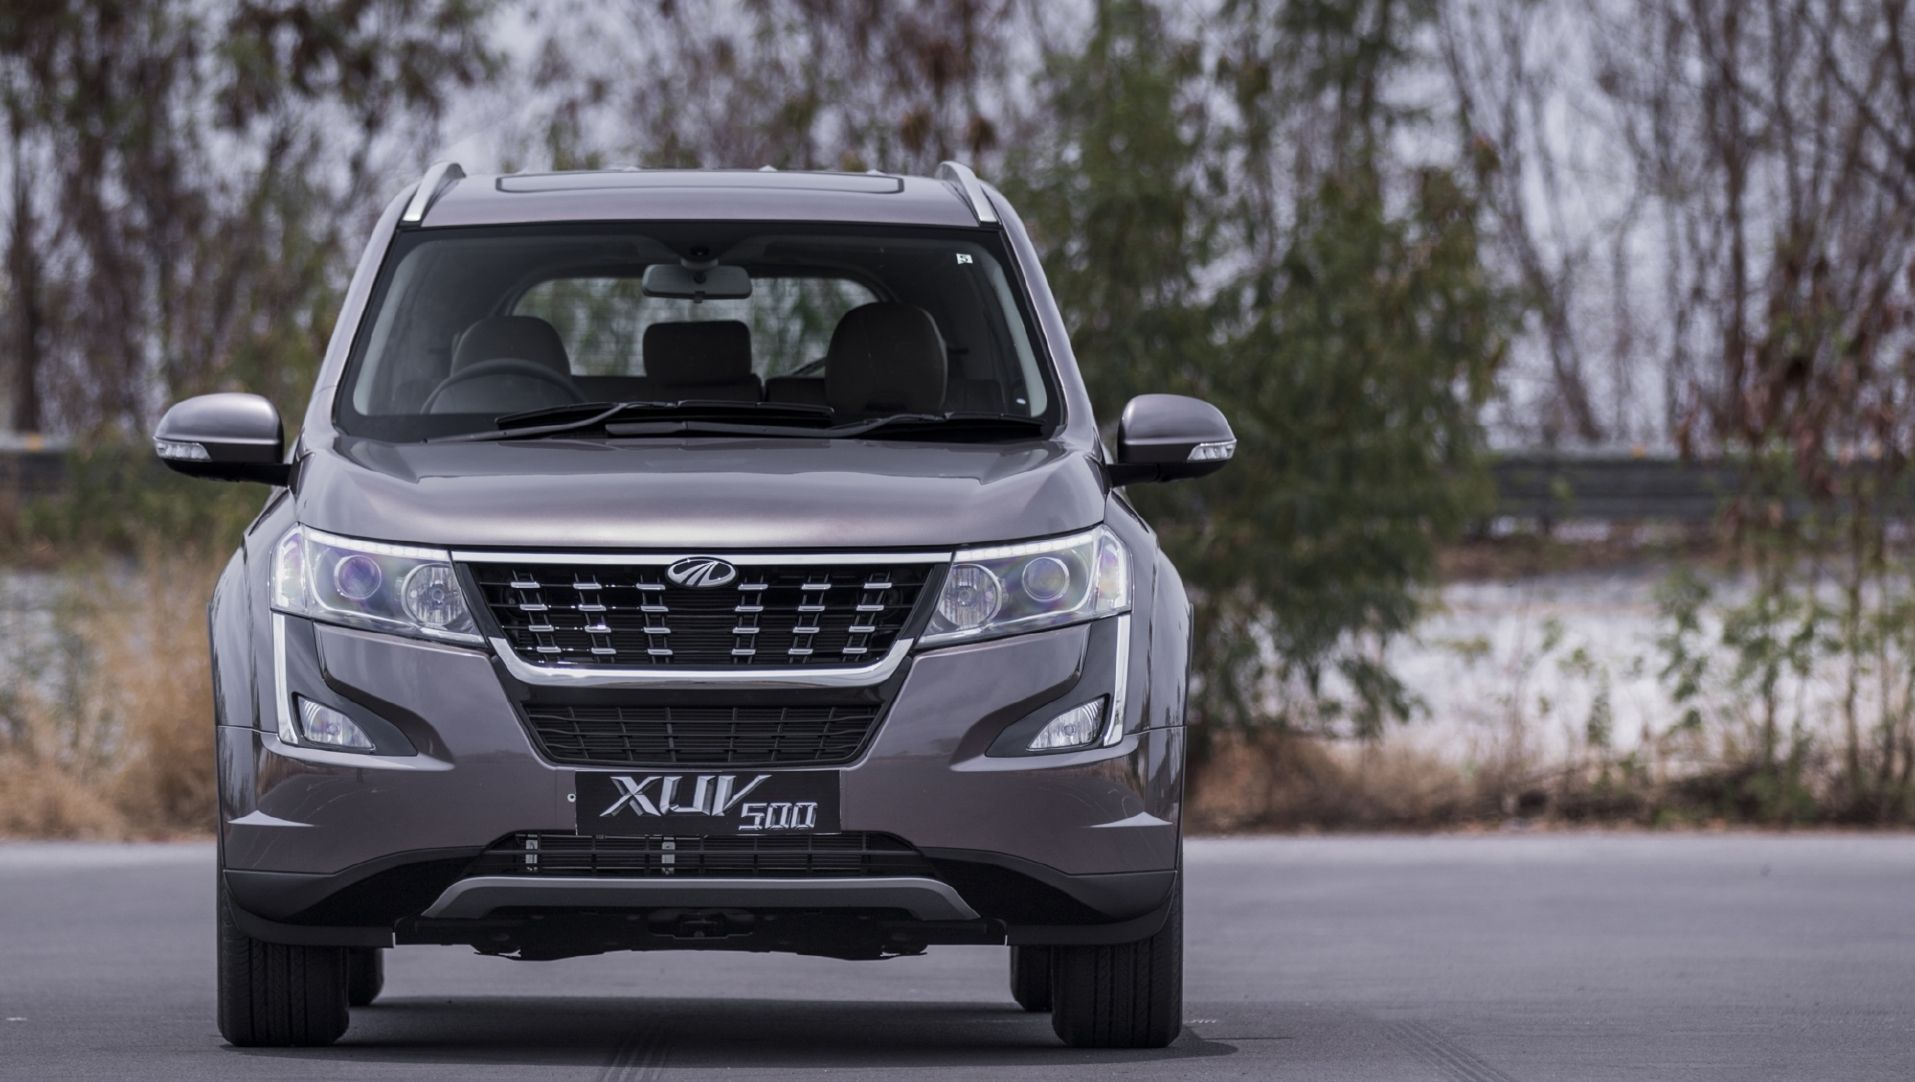 Best Of Xuv 500 Car Wallpaper Pictures In 2020 Car Wallpapers Wallpaper Pictures Wallpaper